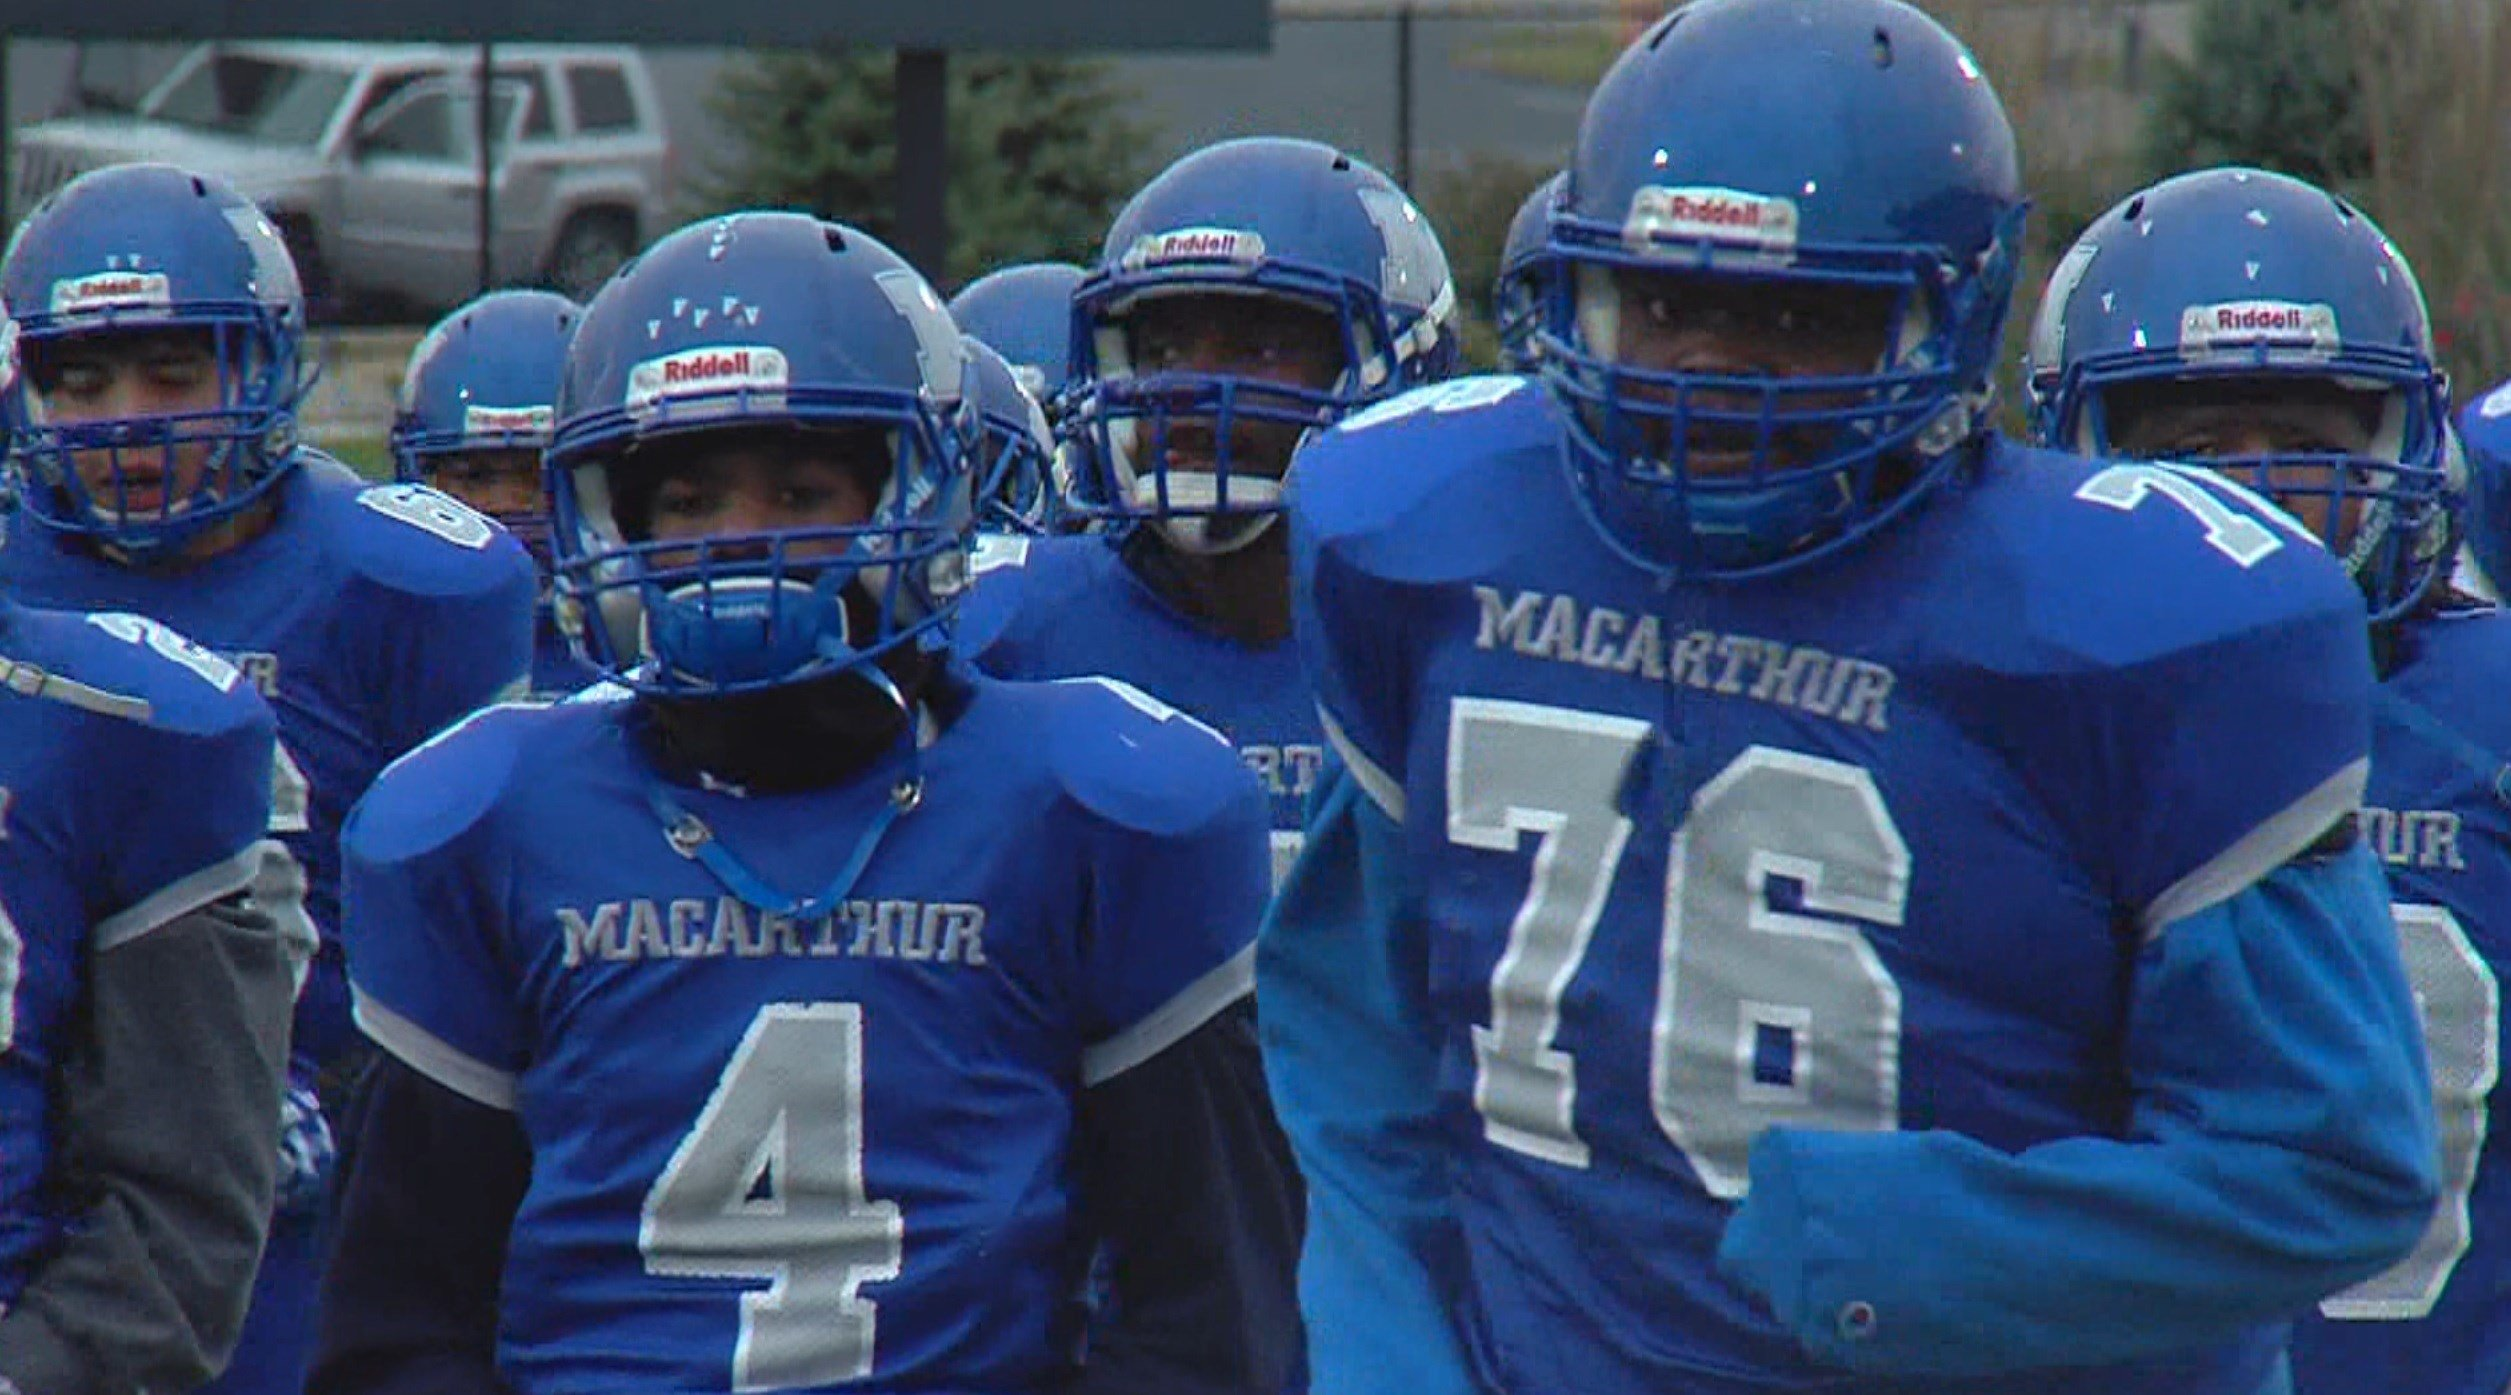 (6) MacArthur took down Big Twelve foe (11) Peoria Notre Dame in the opening round of the 5A playoffs.